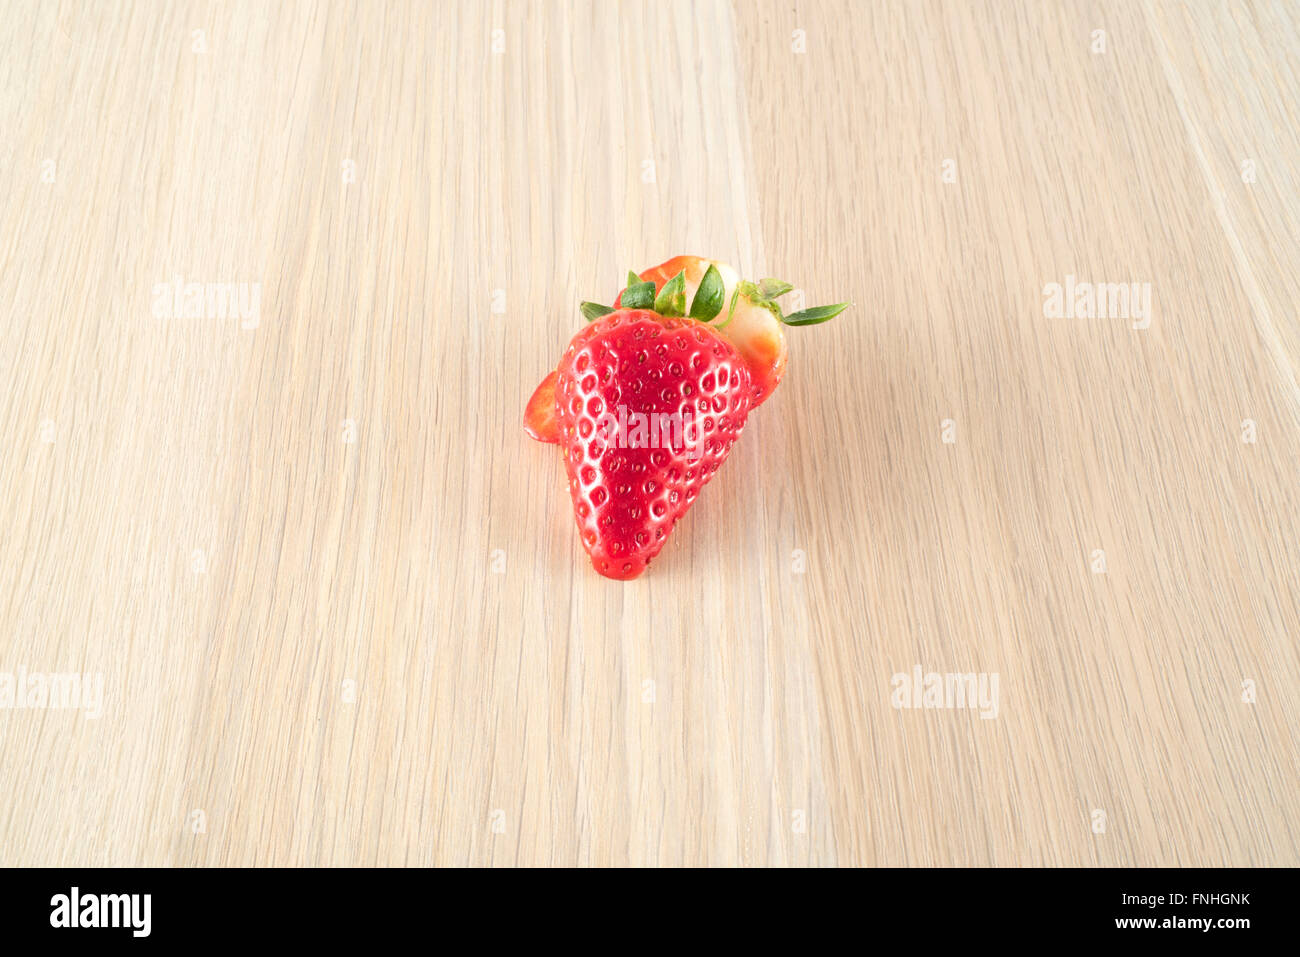 Strawberry on wooden table - Stock Image